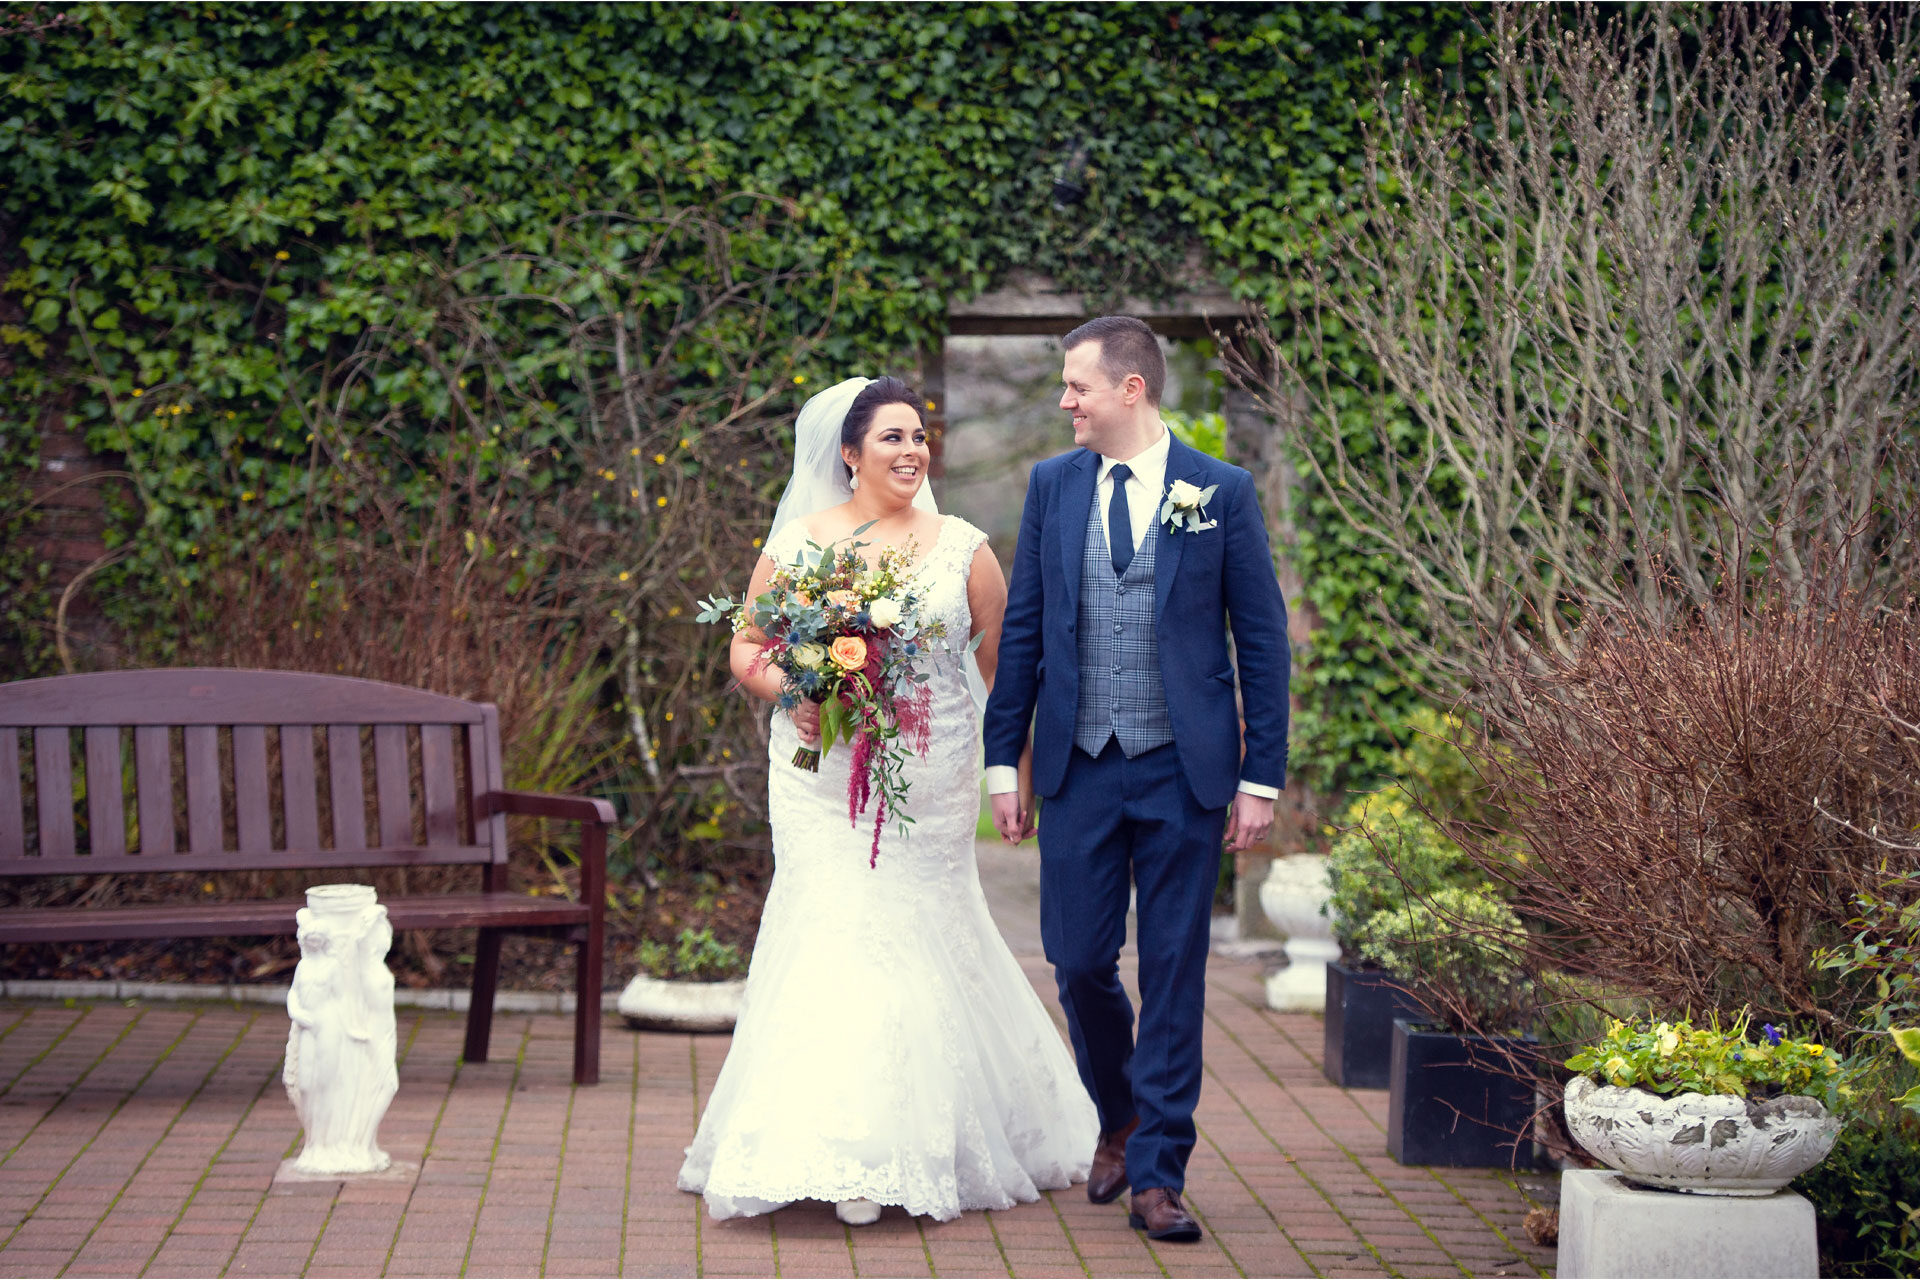 Photo of Clare and Gary on their wedding day, captured in the grounds of